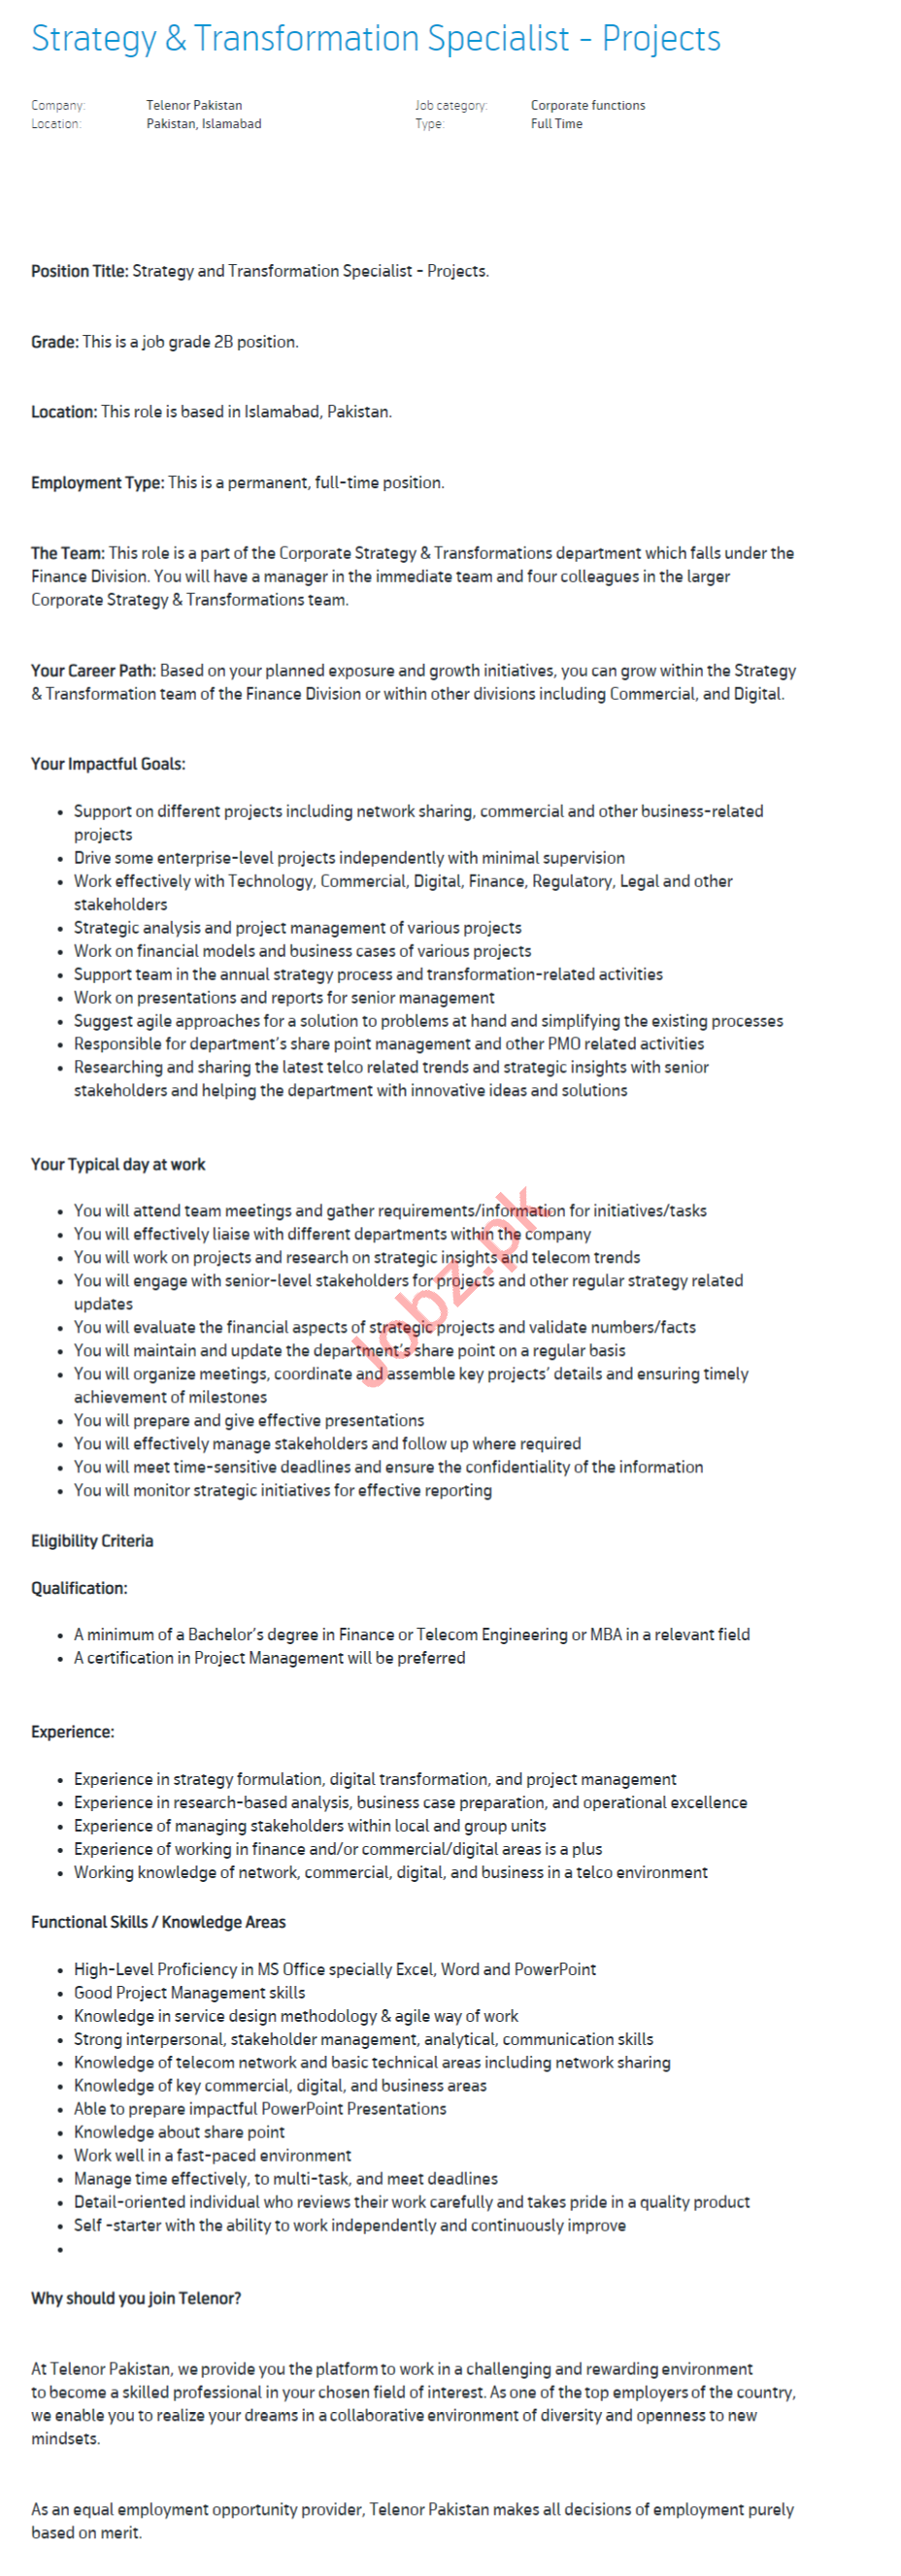 Strategy & Transformation Specialist Jobs 2020 in Islamabad